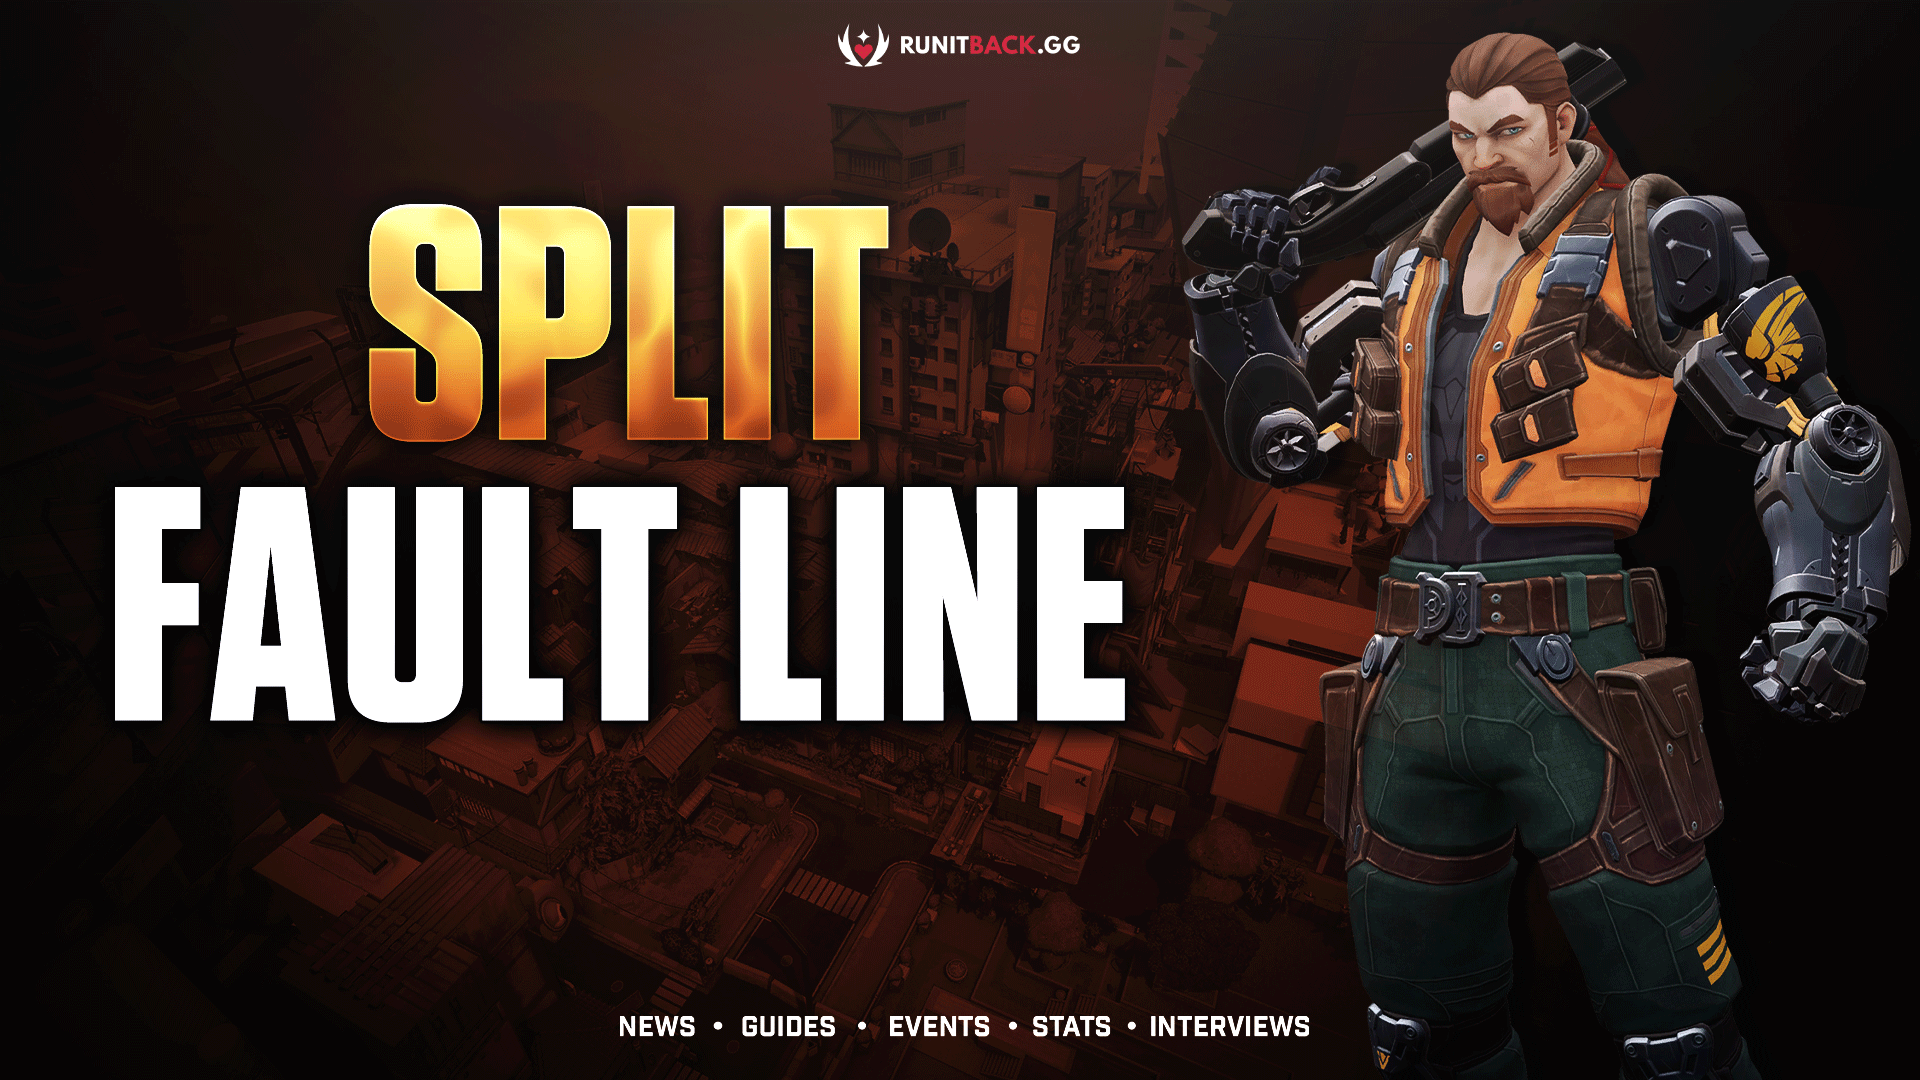 Breach Fault Line Guide: Split